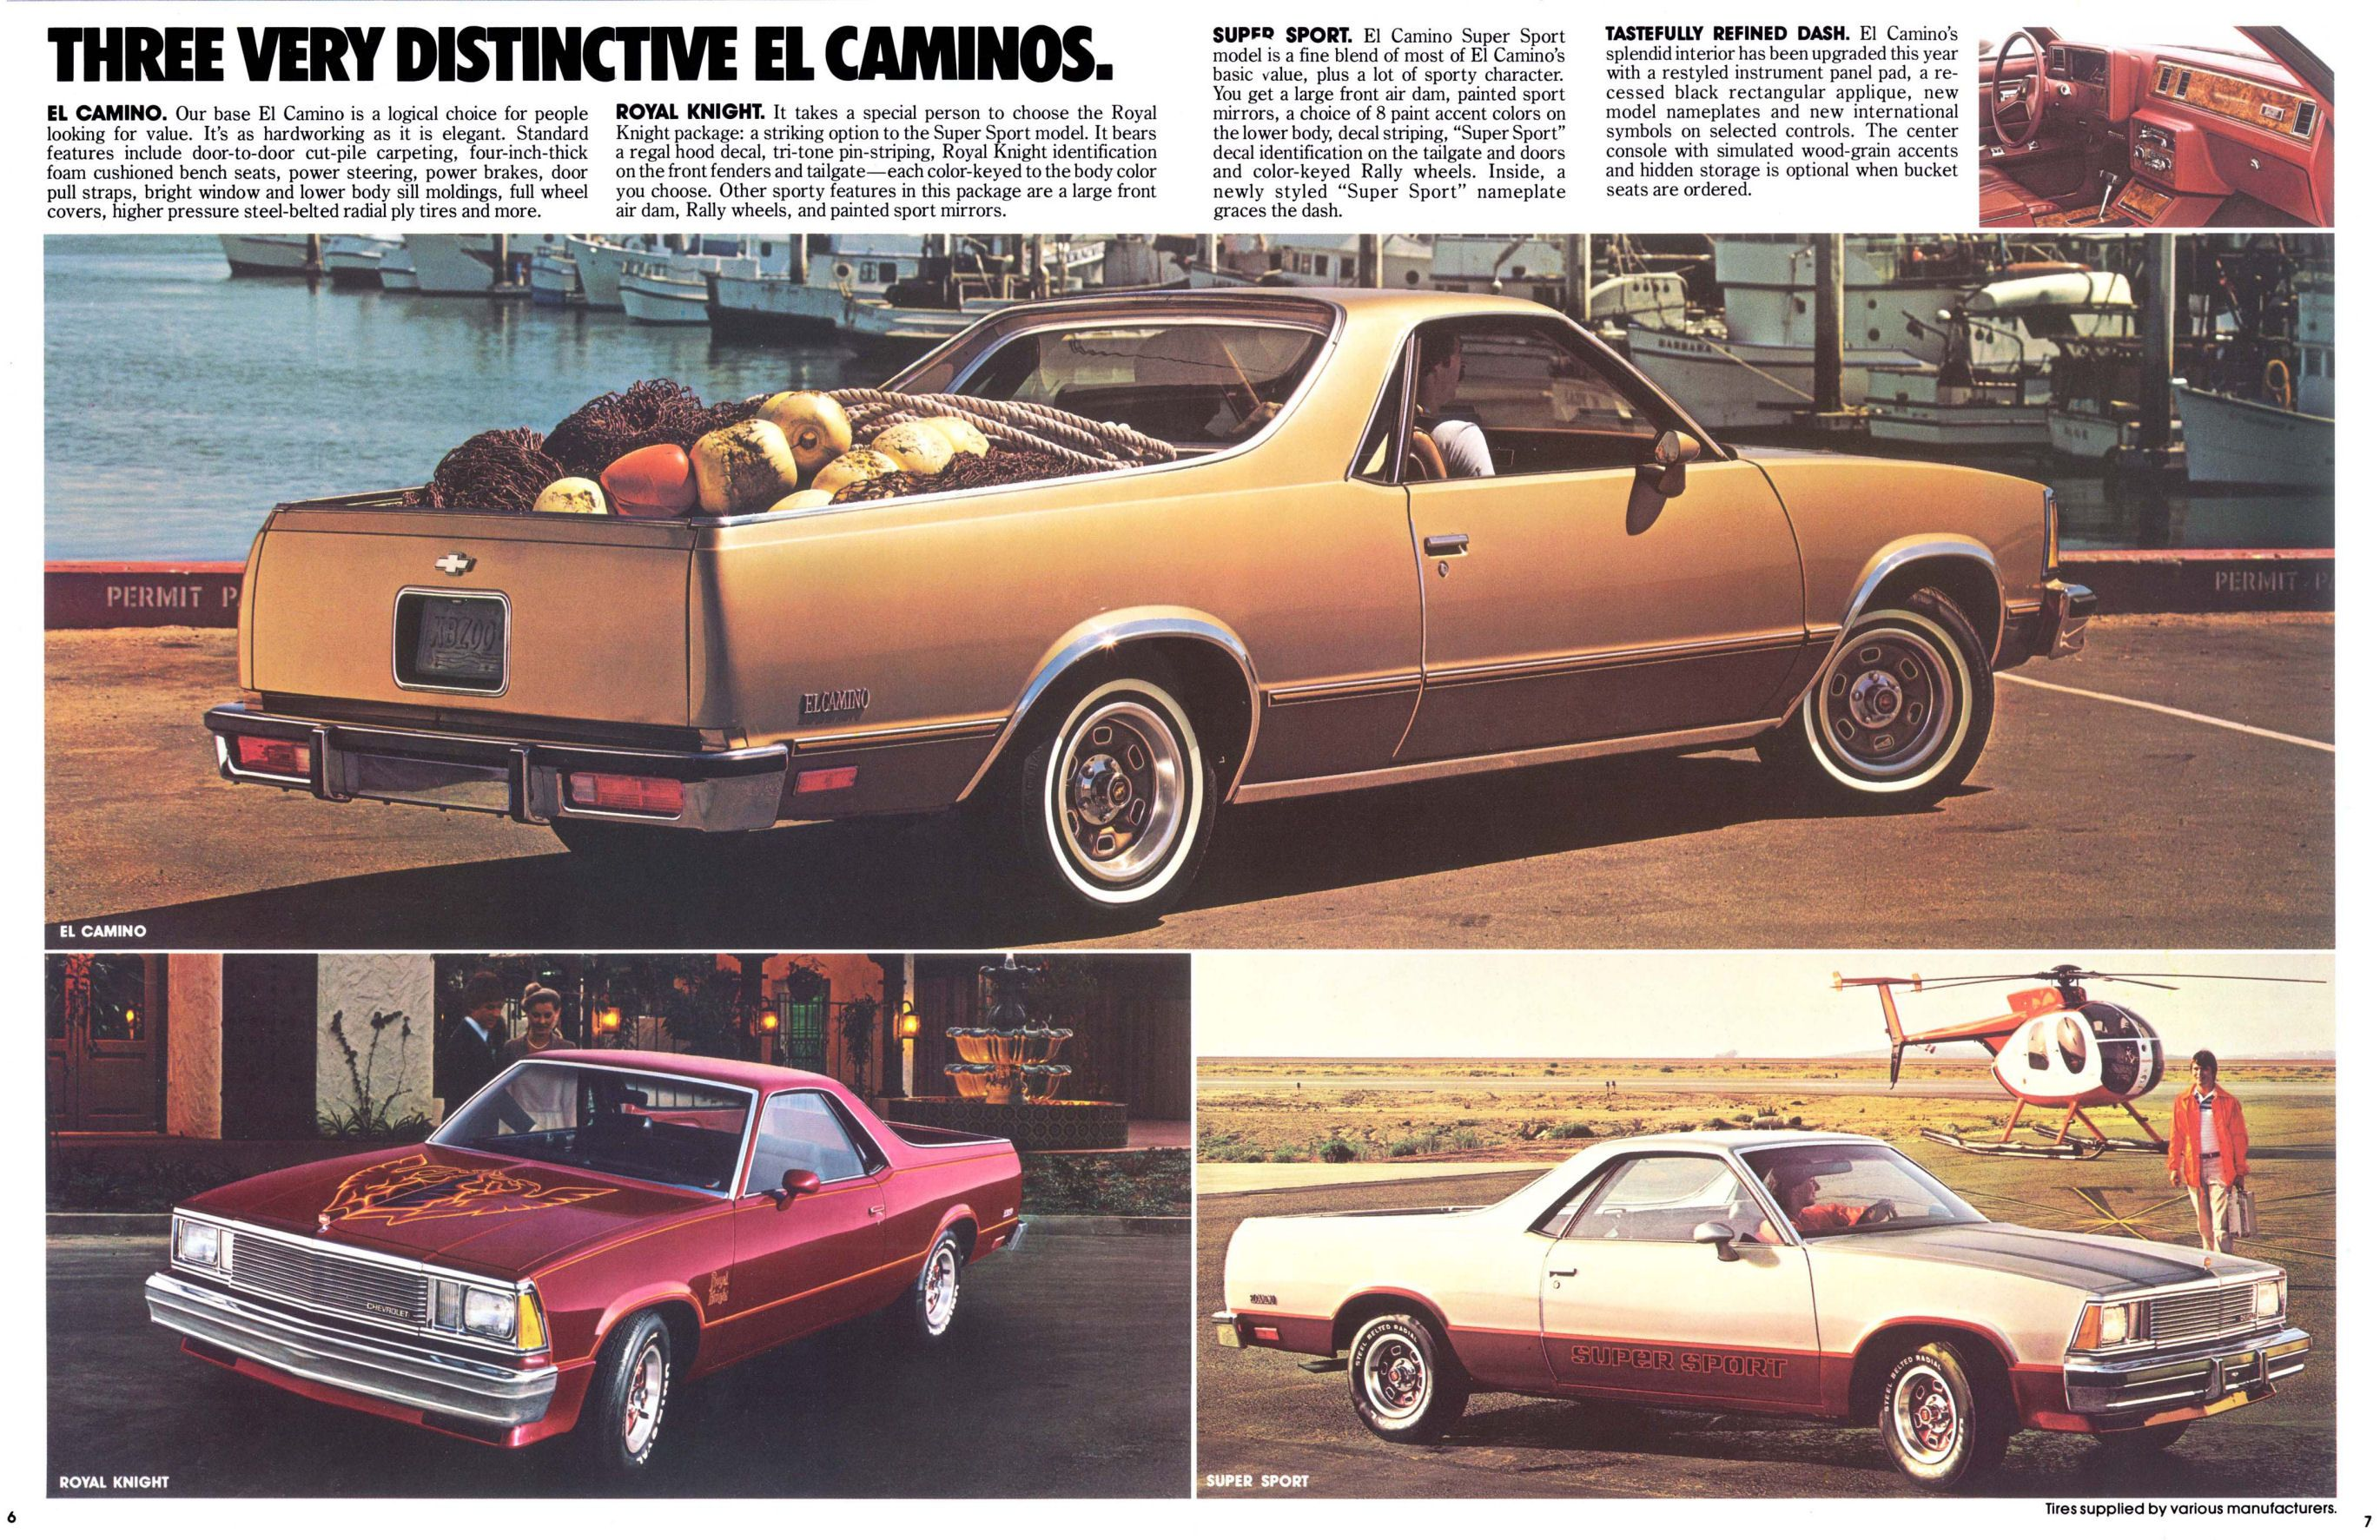 1981 El Camino Chevrolet El Camino Photo Searches 1981 Chevrolet El Camino Chevrolet El Camino Chevrolet Classic Cars Trucks